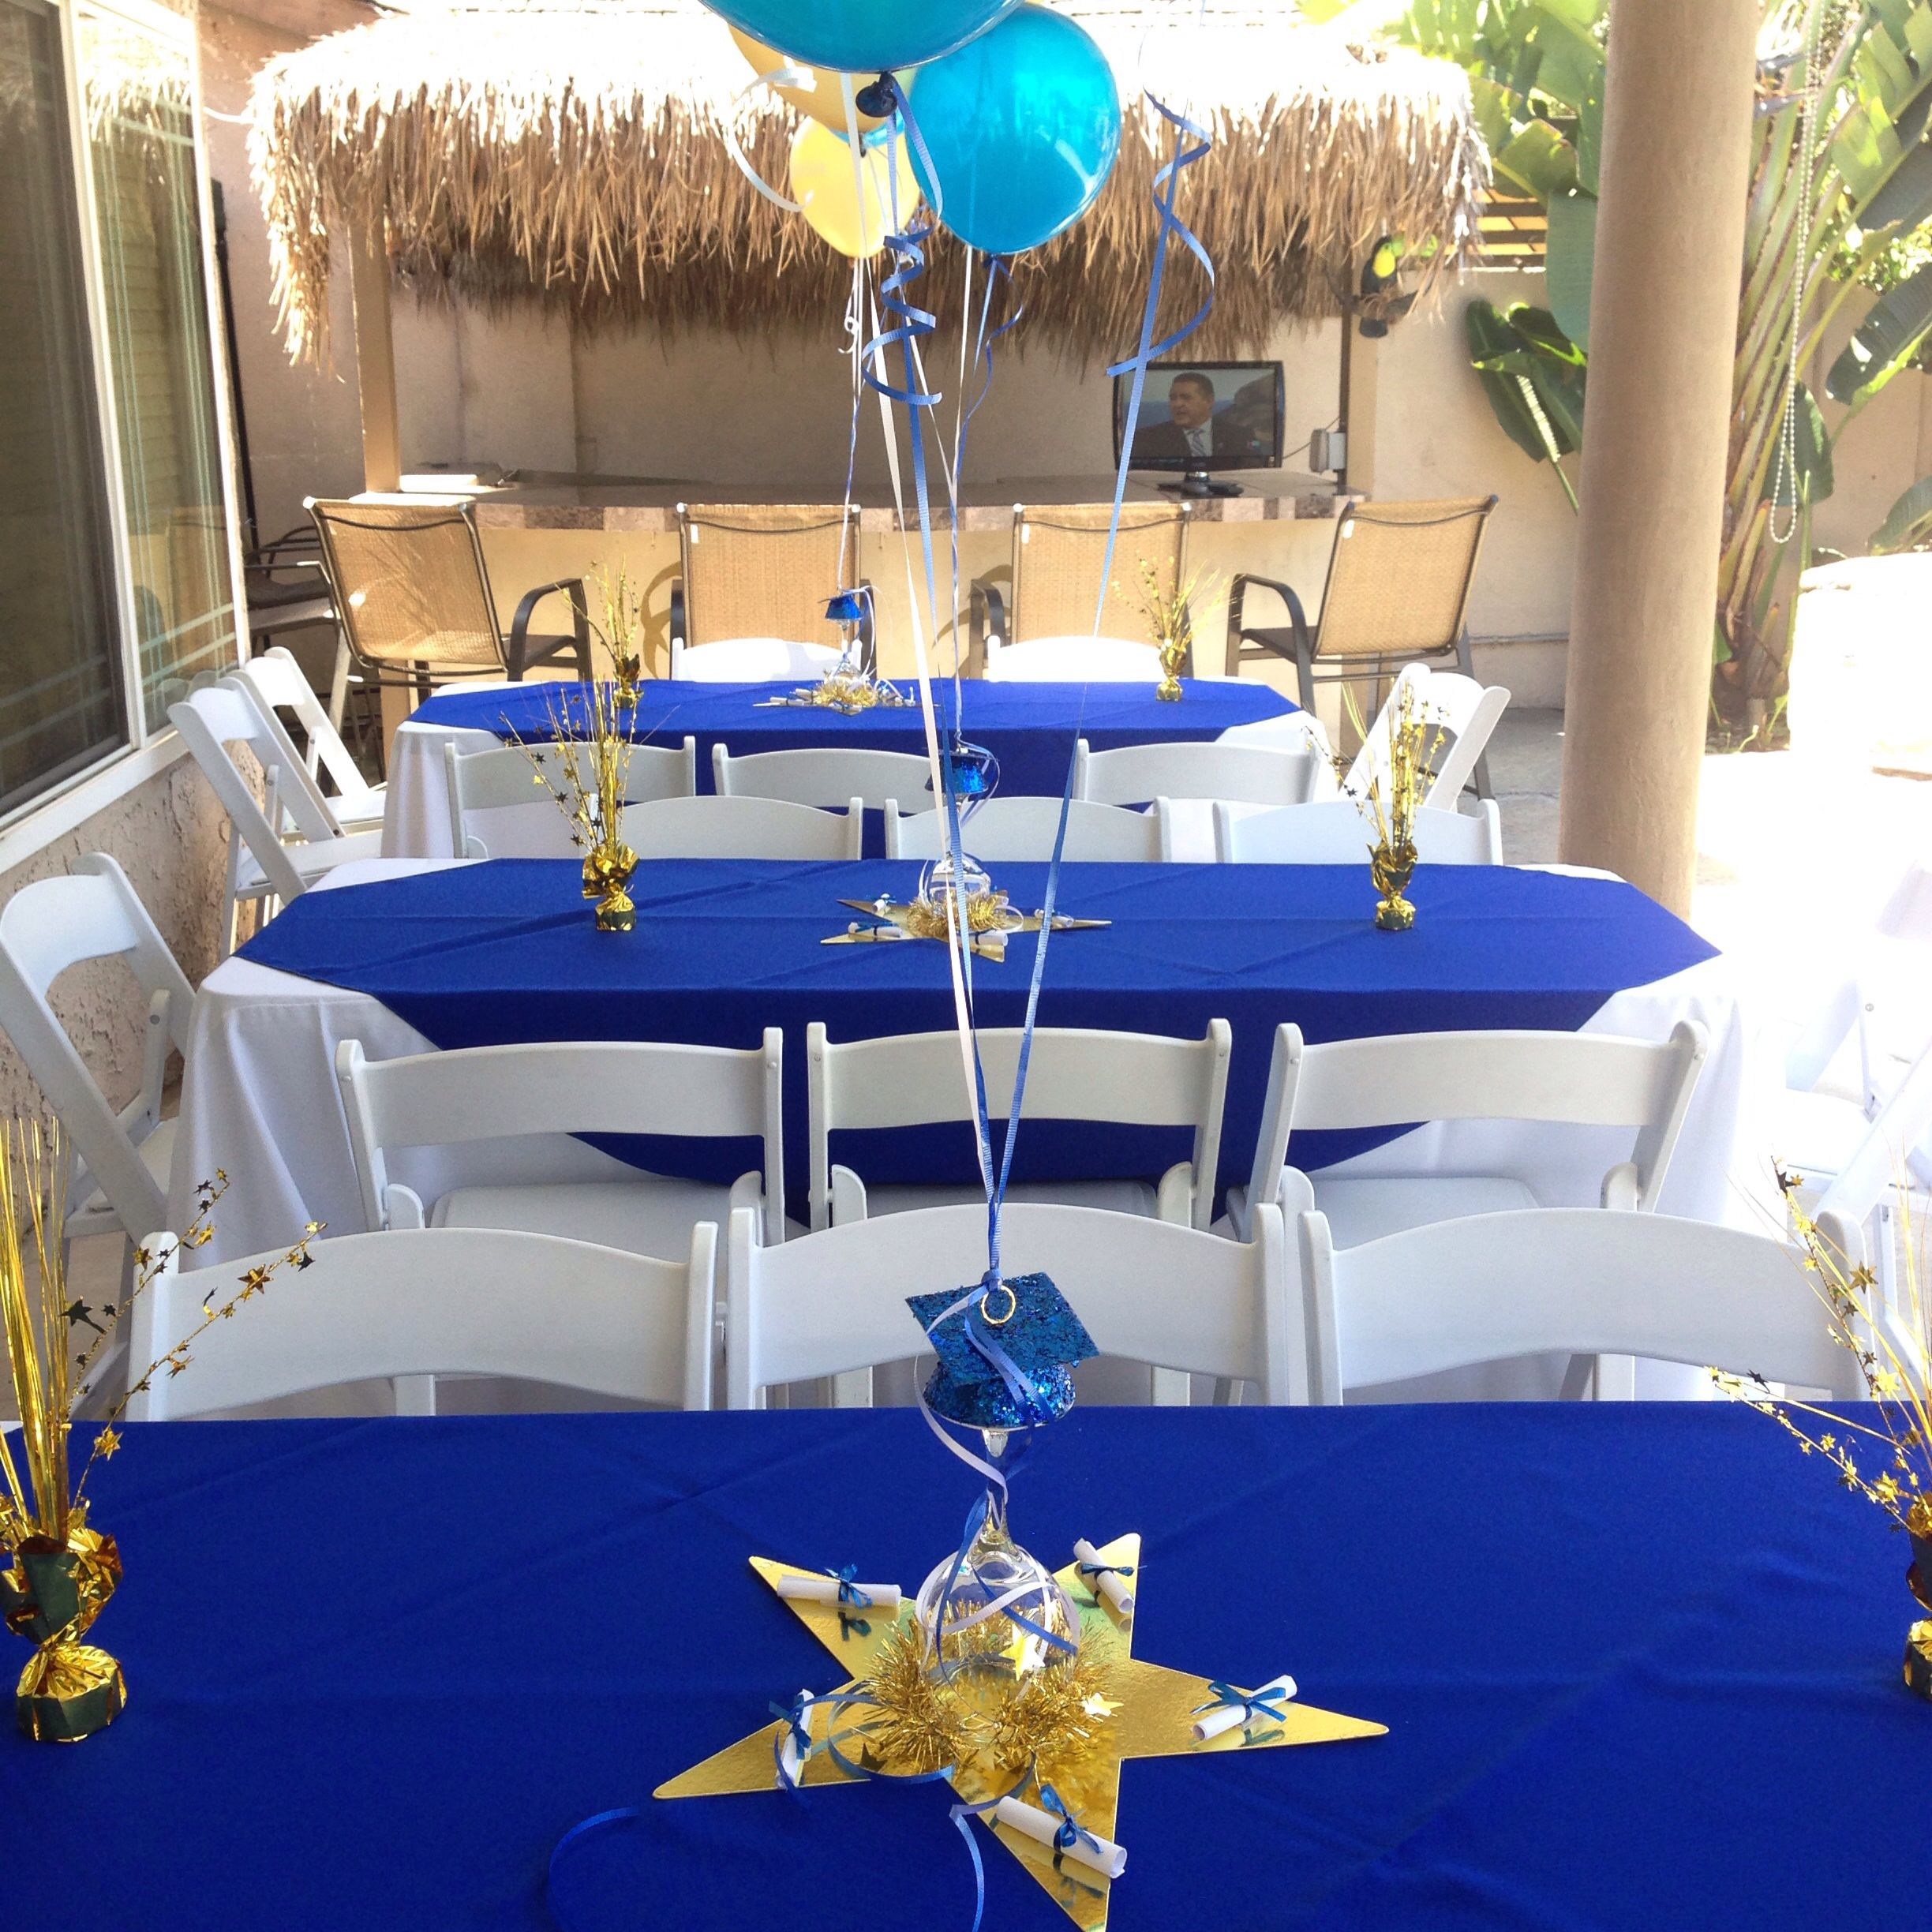 Graduation party ideas for guys imgkid the